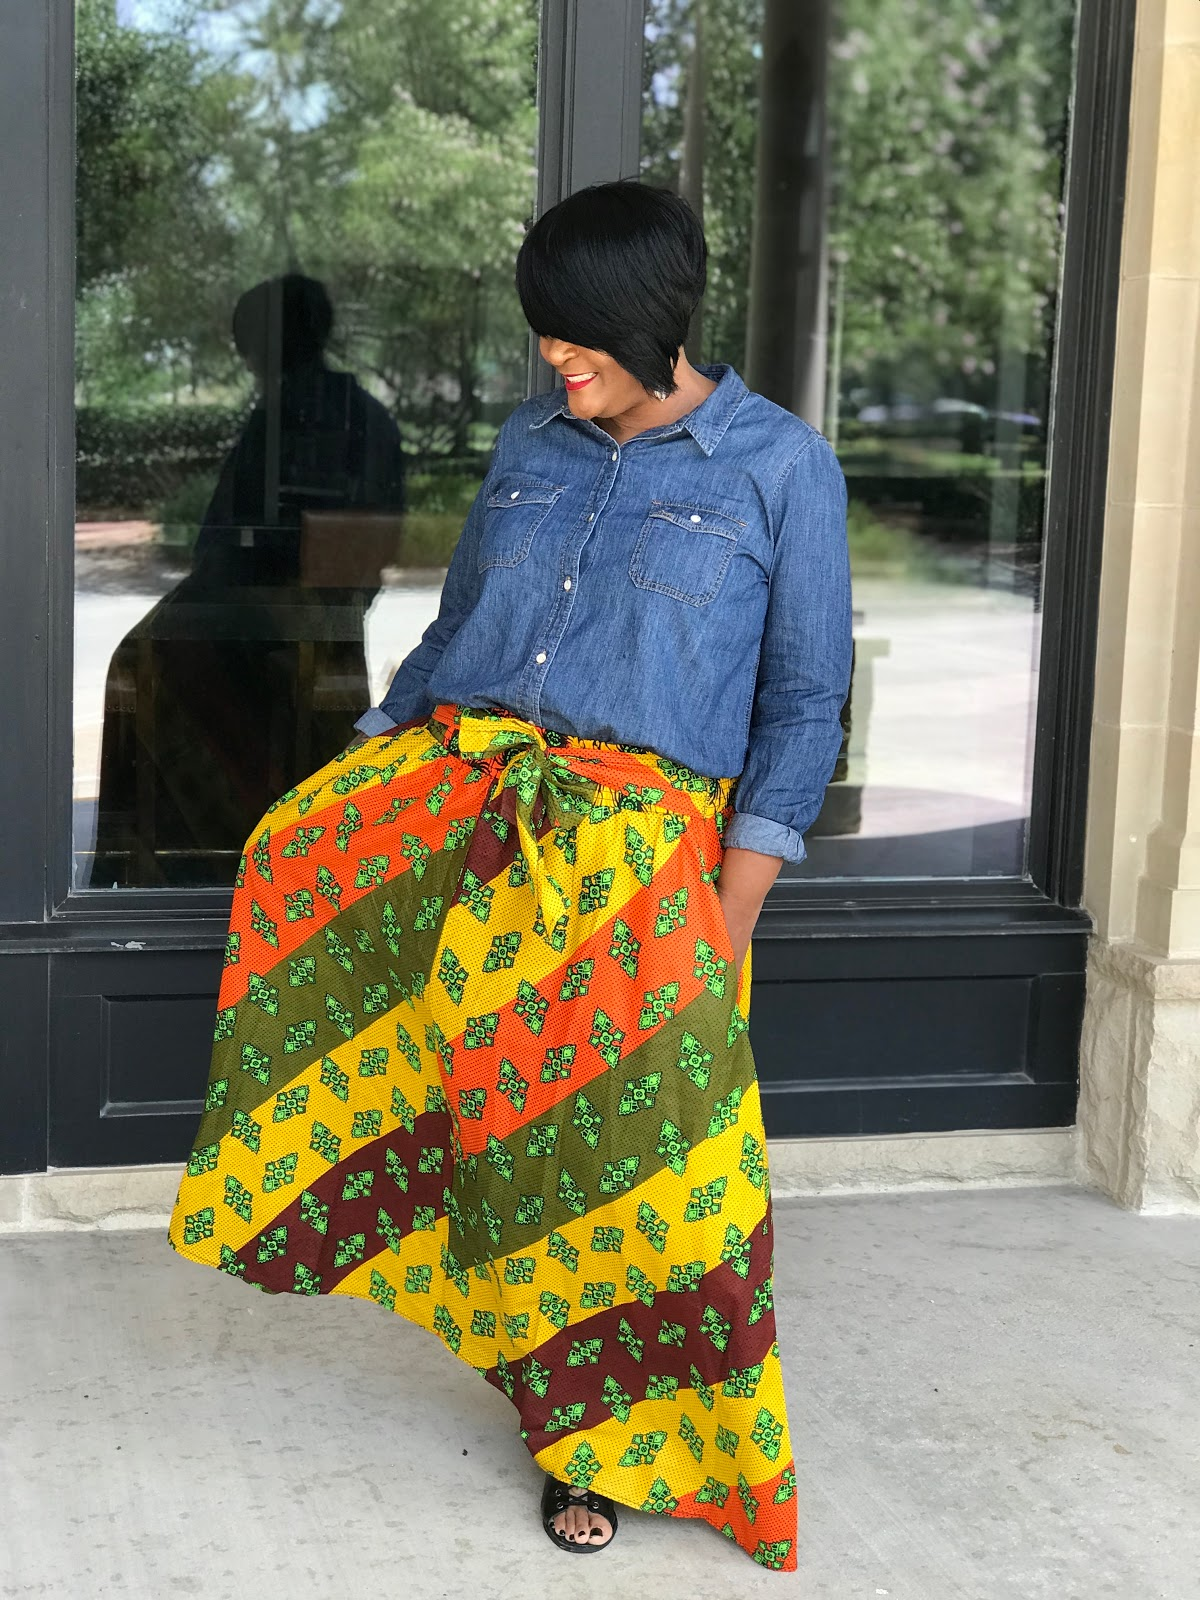 Image: Woman Showing Off Her New Ankara Skirt By Tangie Bell